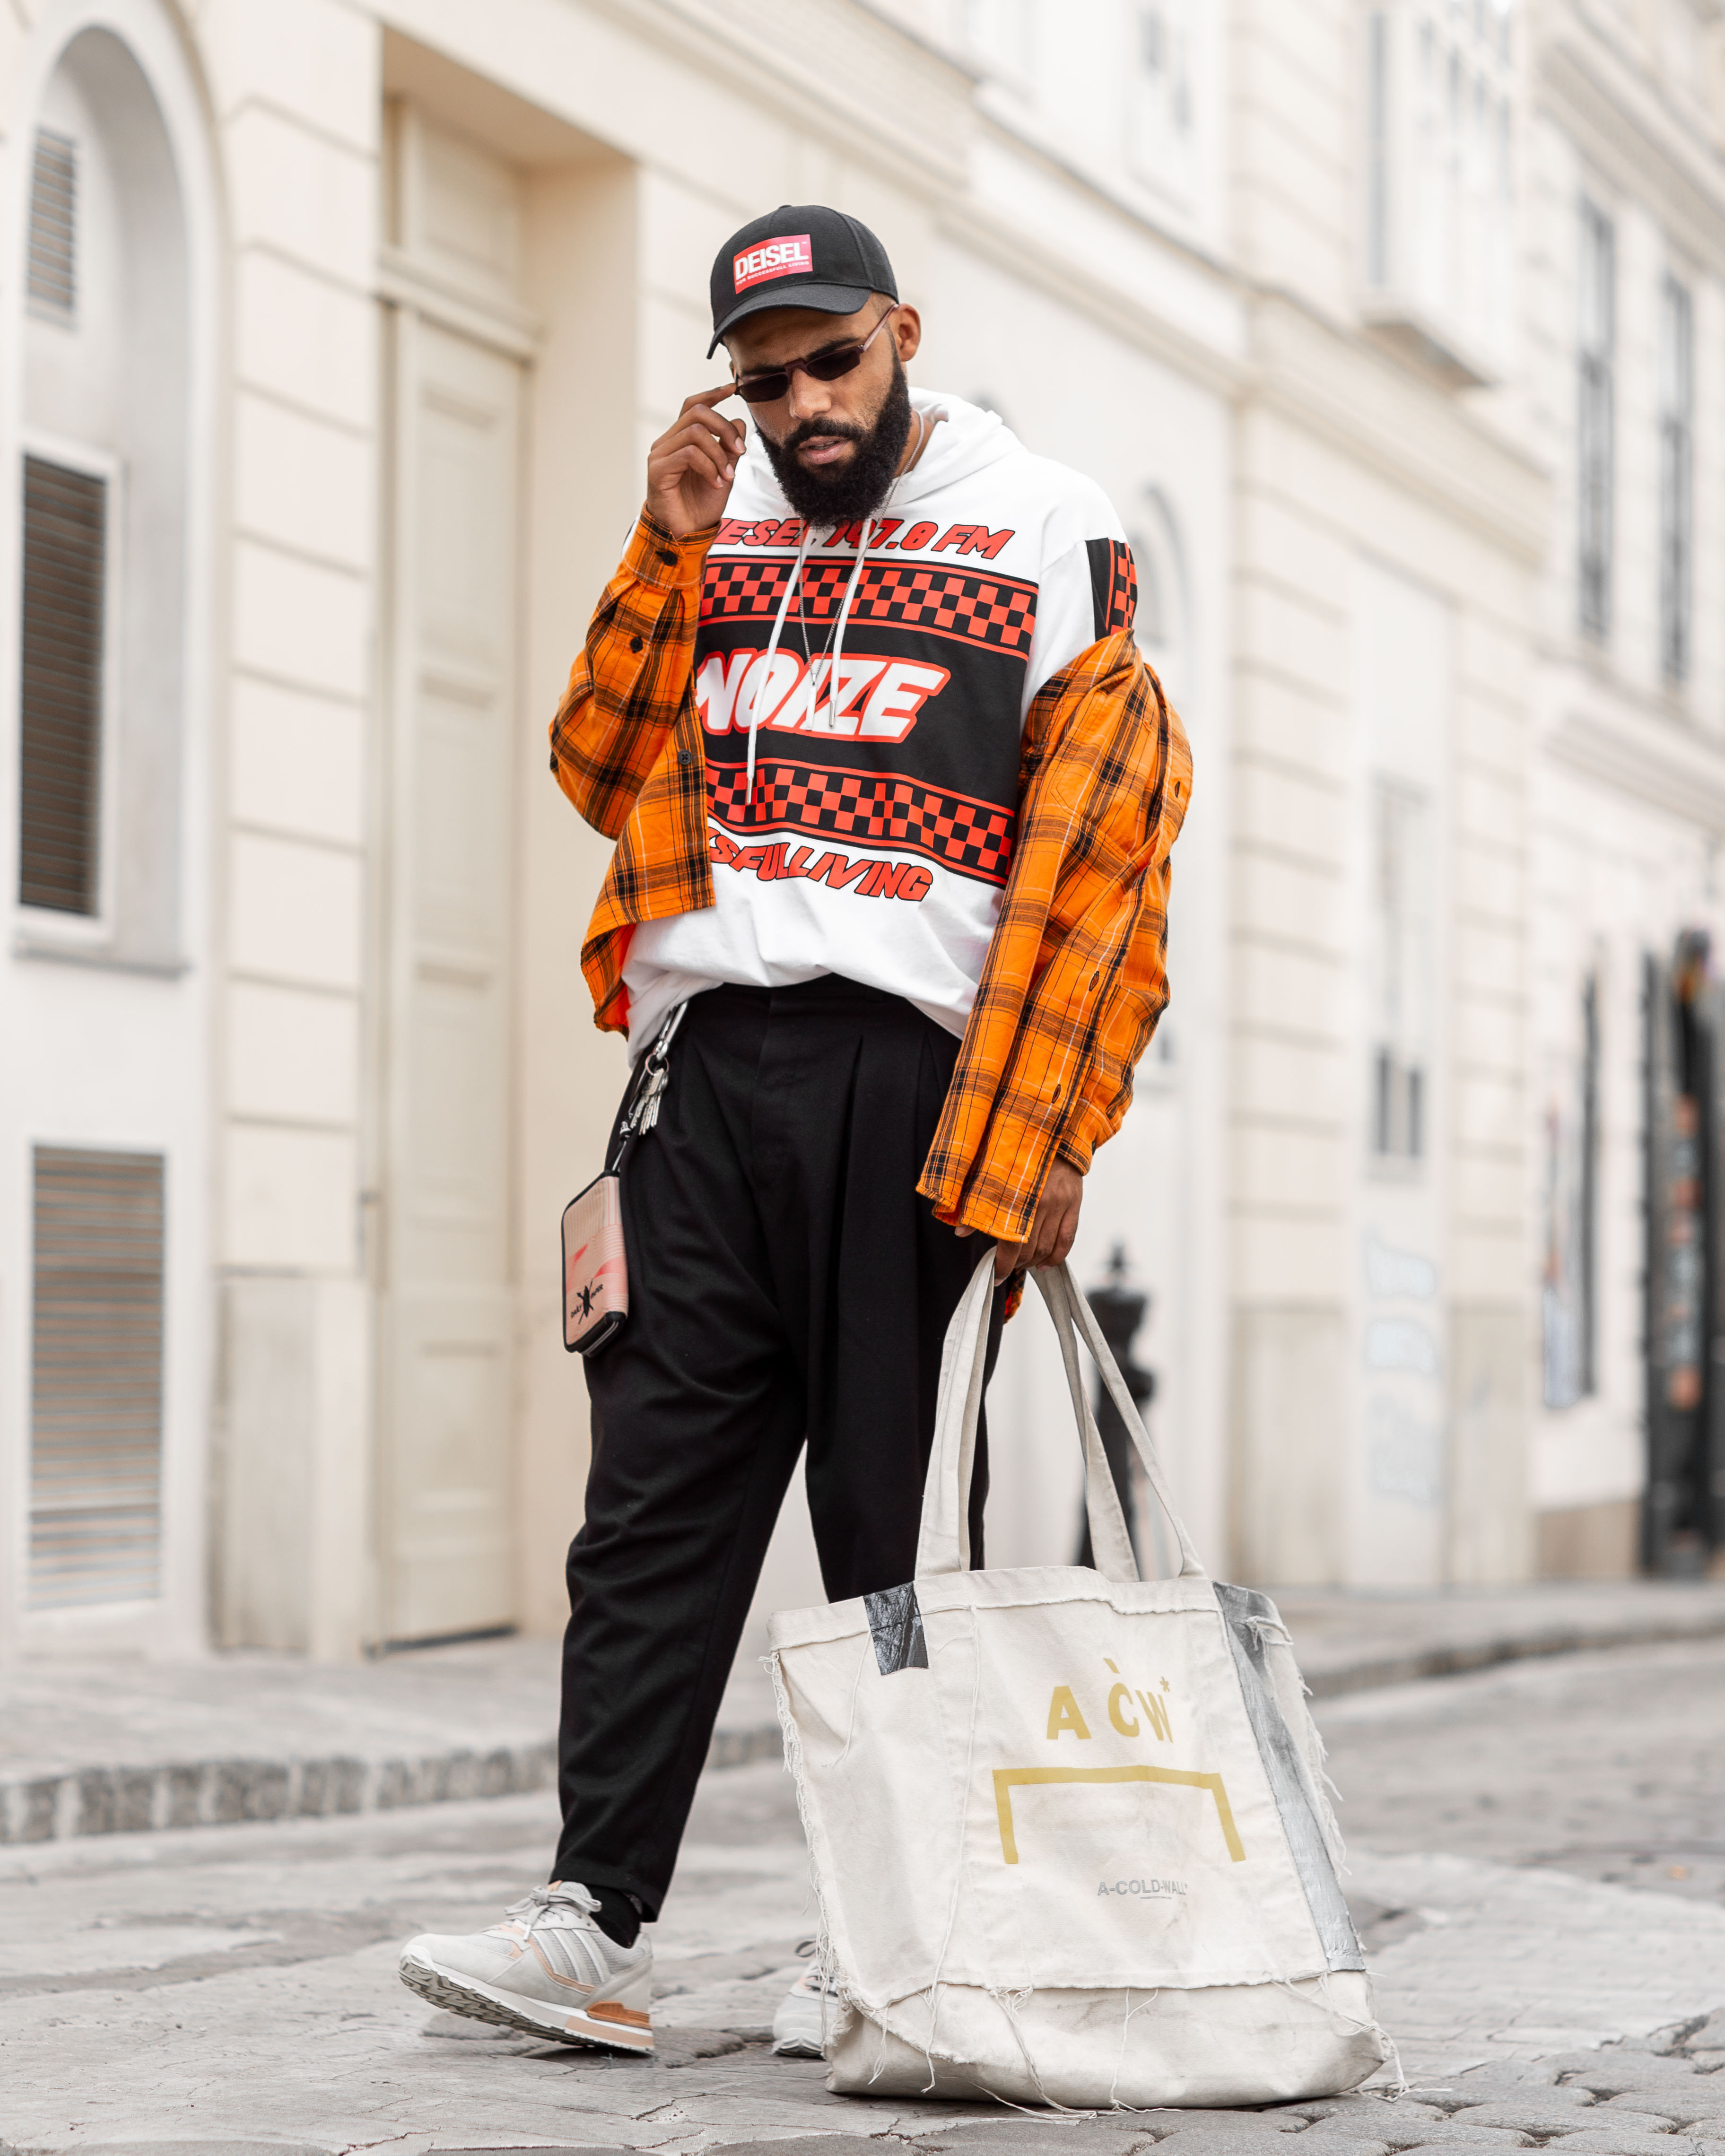 Street Style: Jean-Claude Mpassy from New Kiss on the Blog wearing Diesel FW19 and a bag from A-Cold-Wall